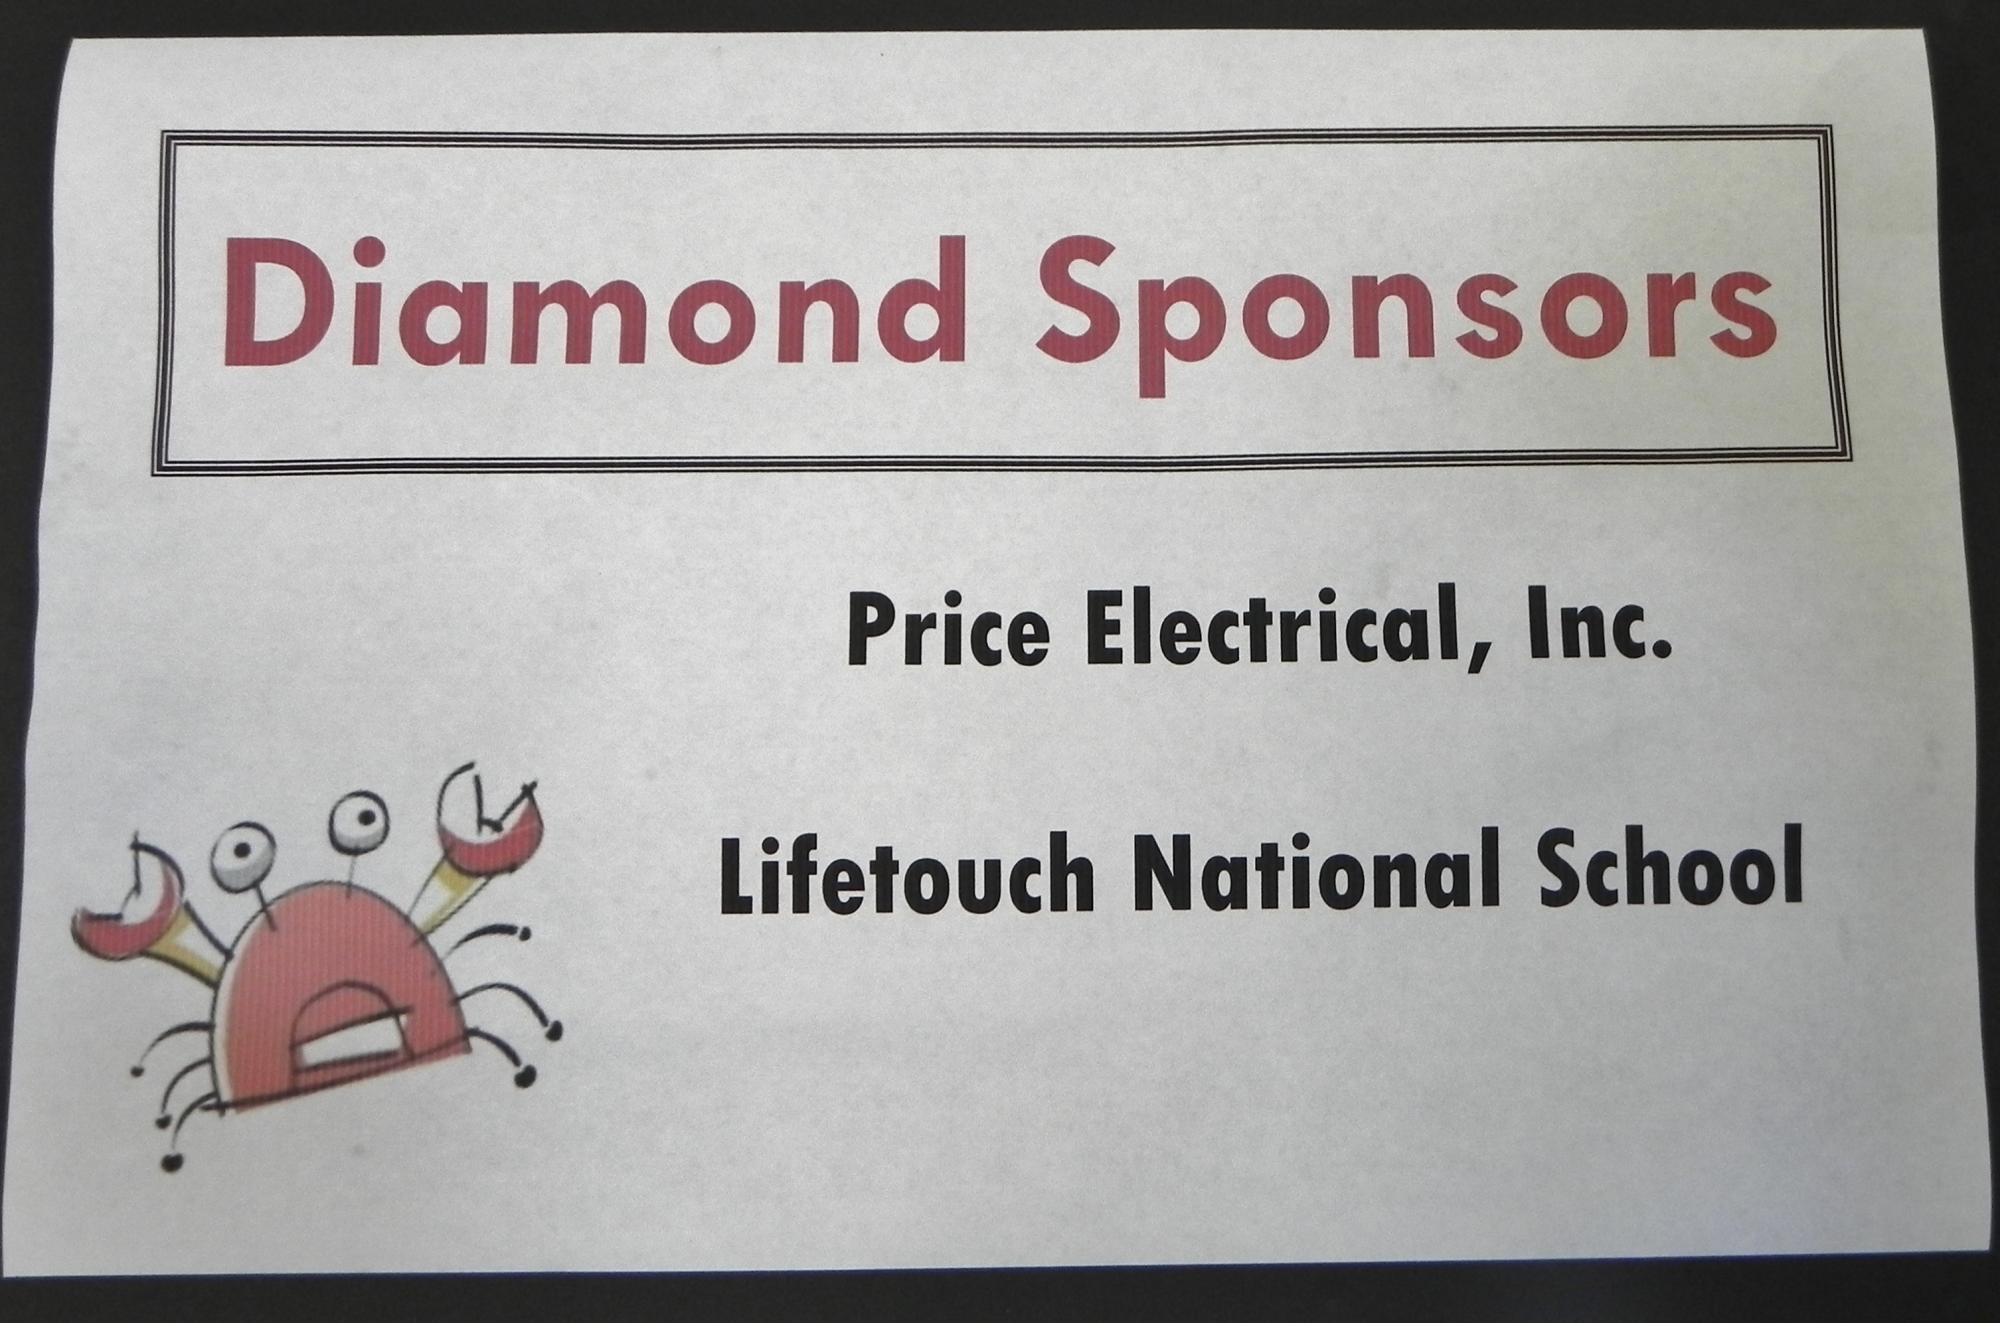 sign-diamond-sponsors.jpg